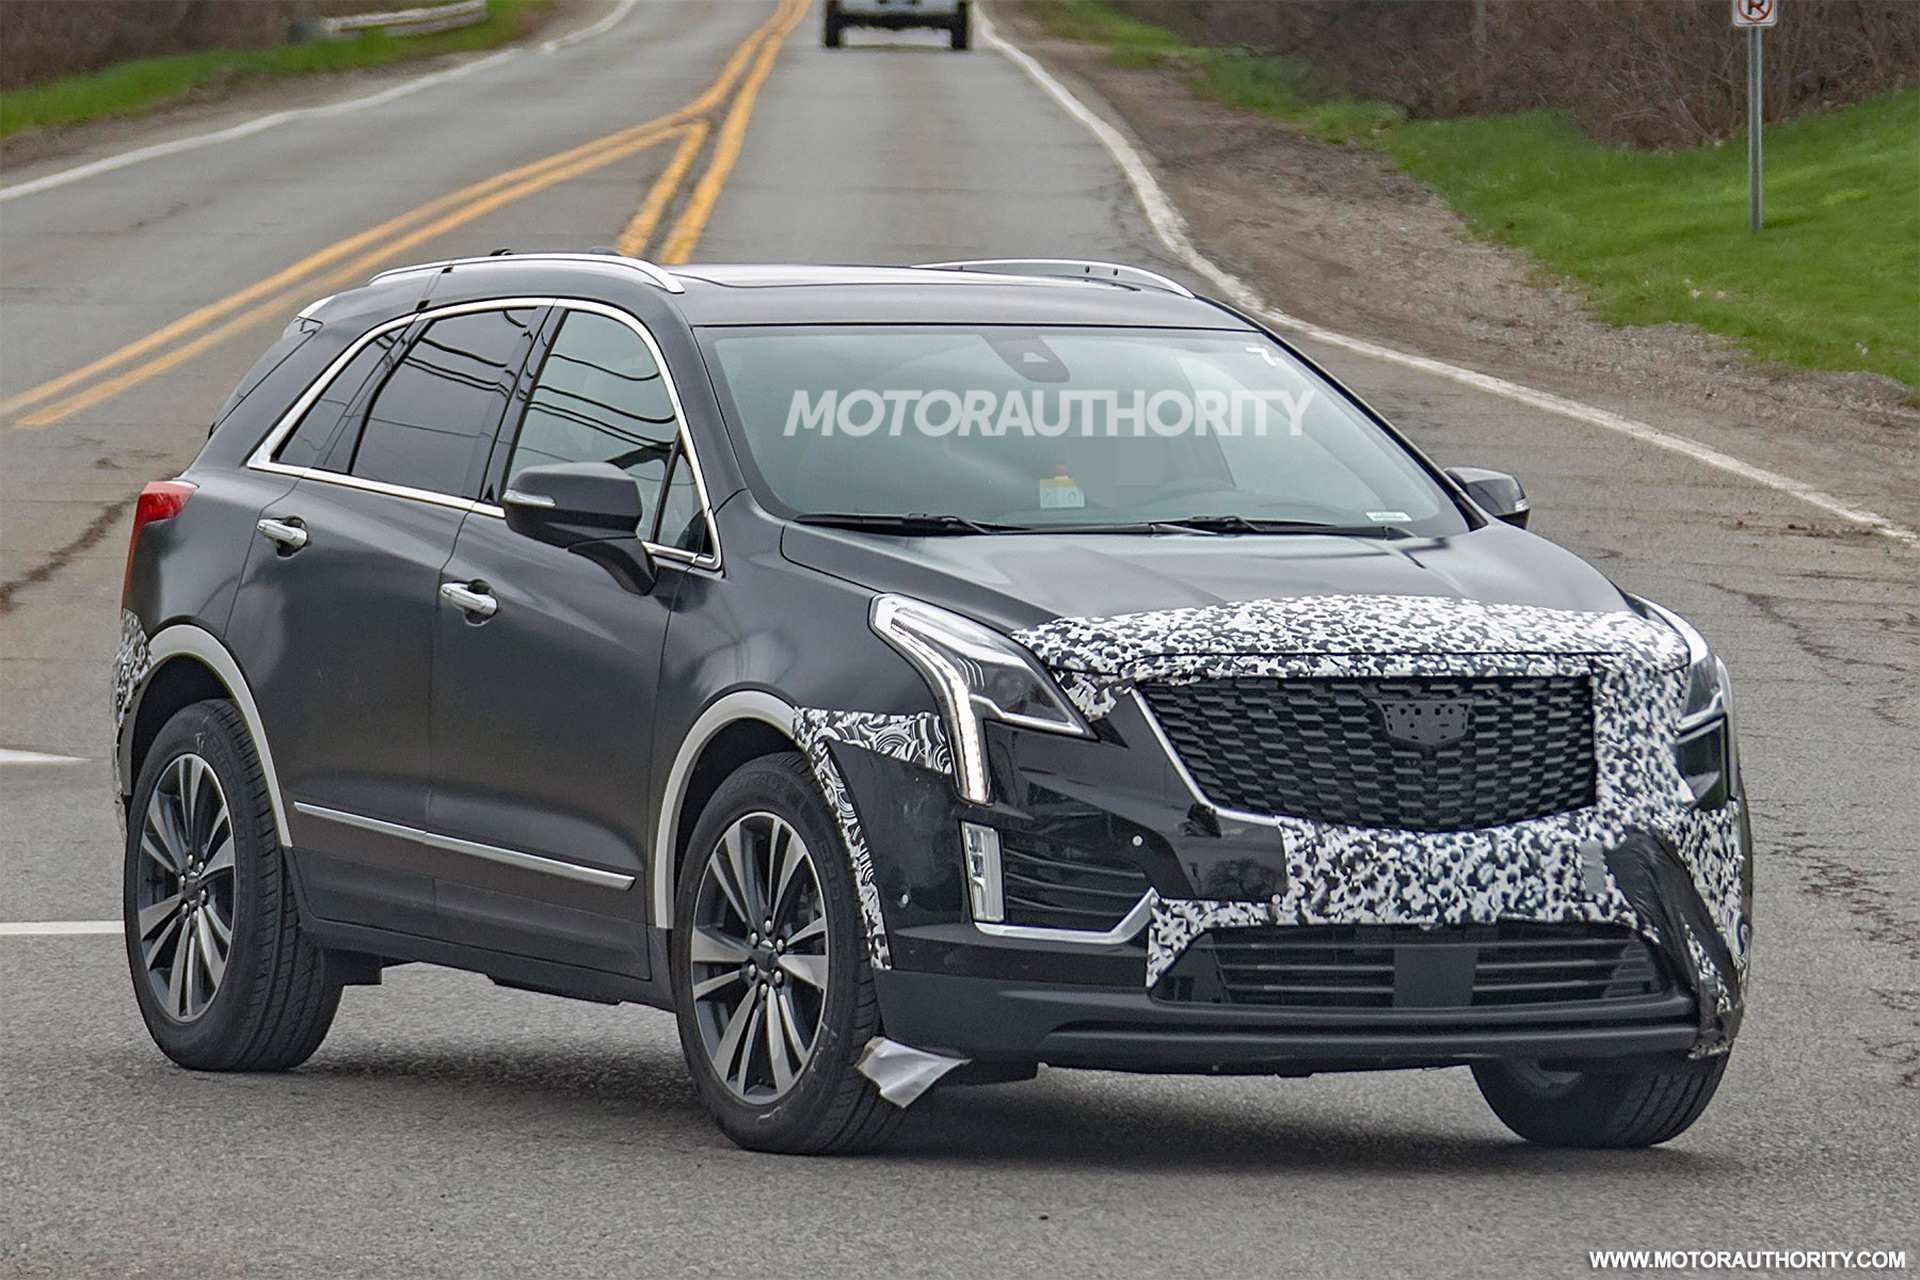 11 Great The 2019 Cadillac Xt5 Used Concept New Concept with The 2019 Cadillac Xt5 Used Concept